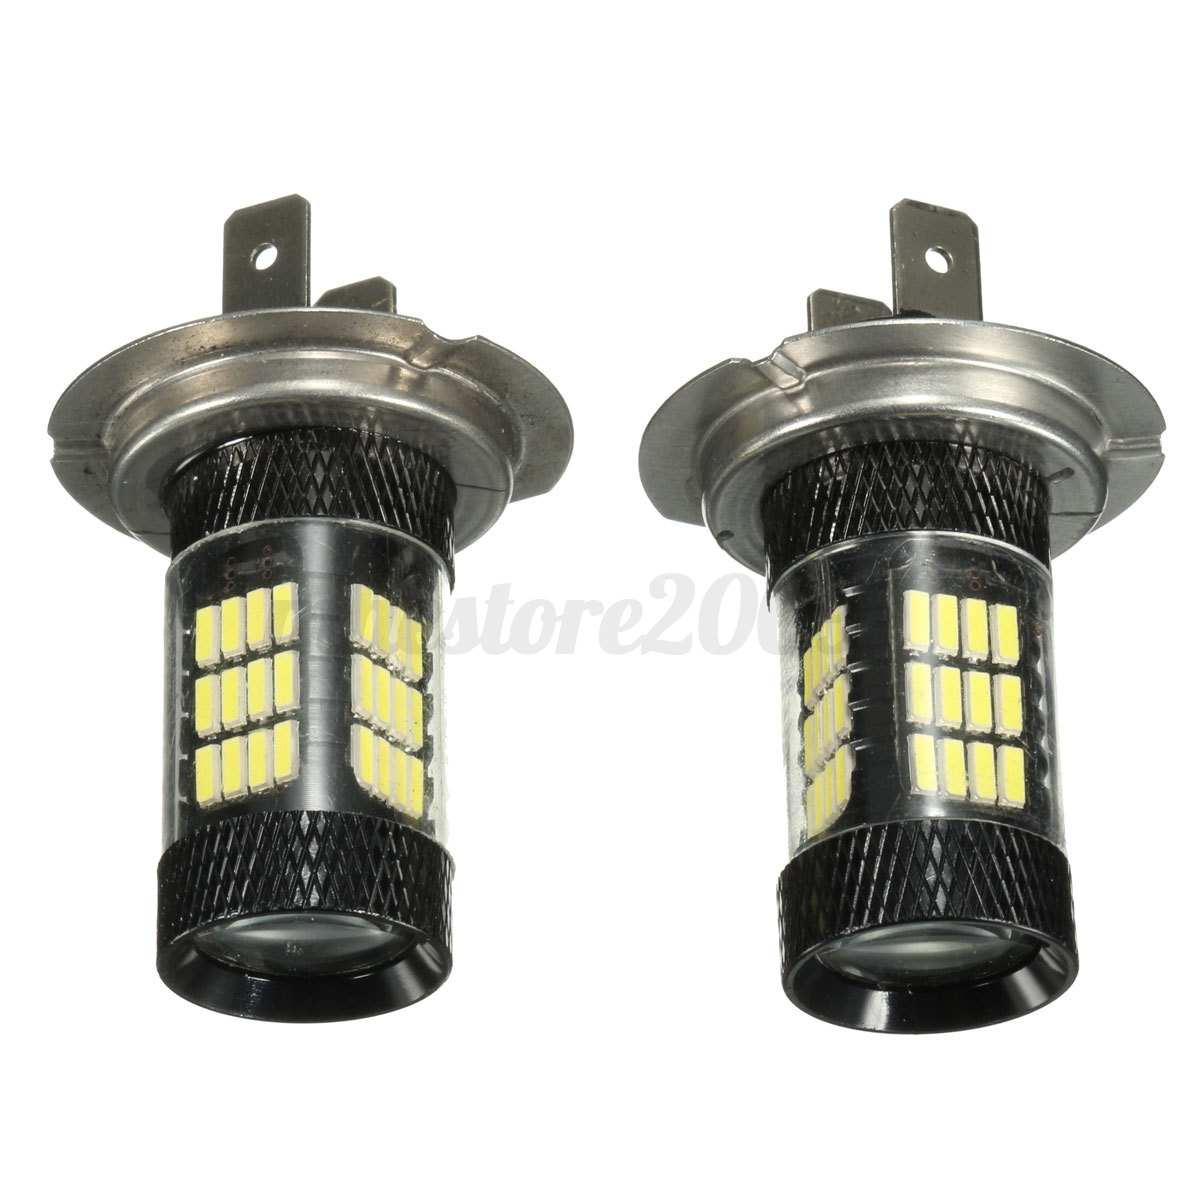 2pcs 6000k bright white h7 57 smd led bulbs headlight fog. Black Bedroom Furniture Sets. Home Design Ideas